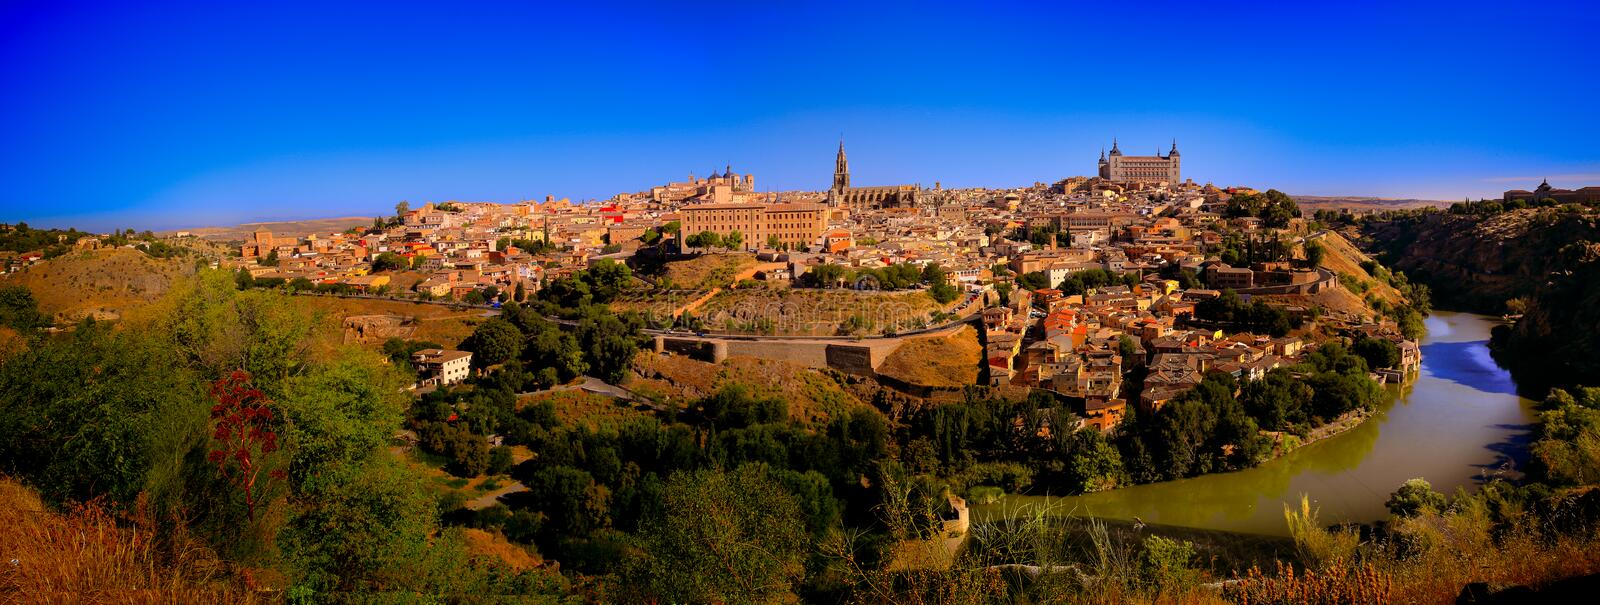 Toledo Spain. Toledo (Spanish: [toˈleðo]) is a municipality located in central Spain, 70 km south of Madrid. It is the capital of the province of Toledo royalty free stock image